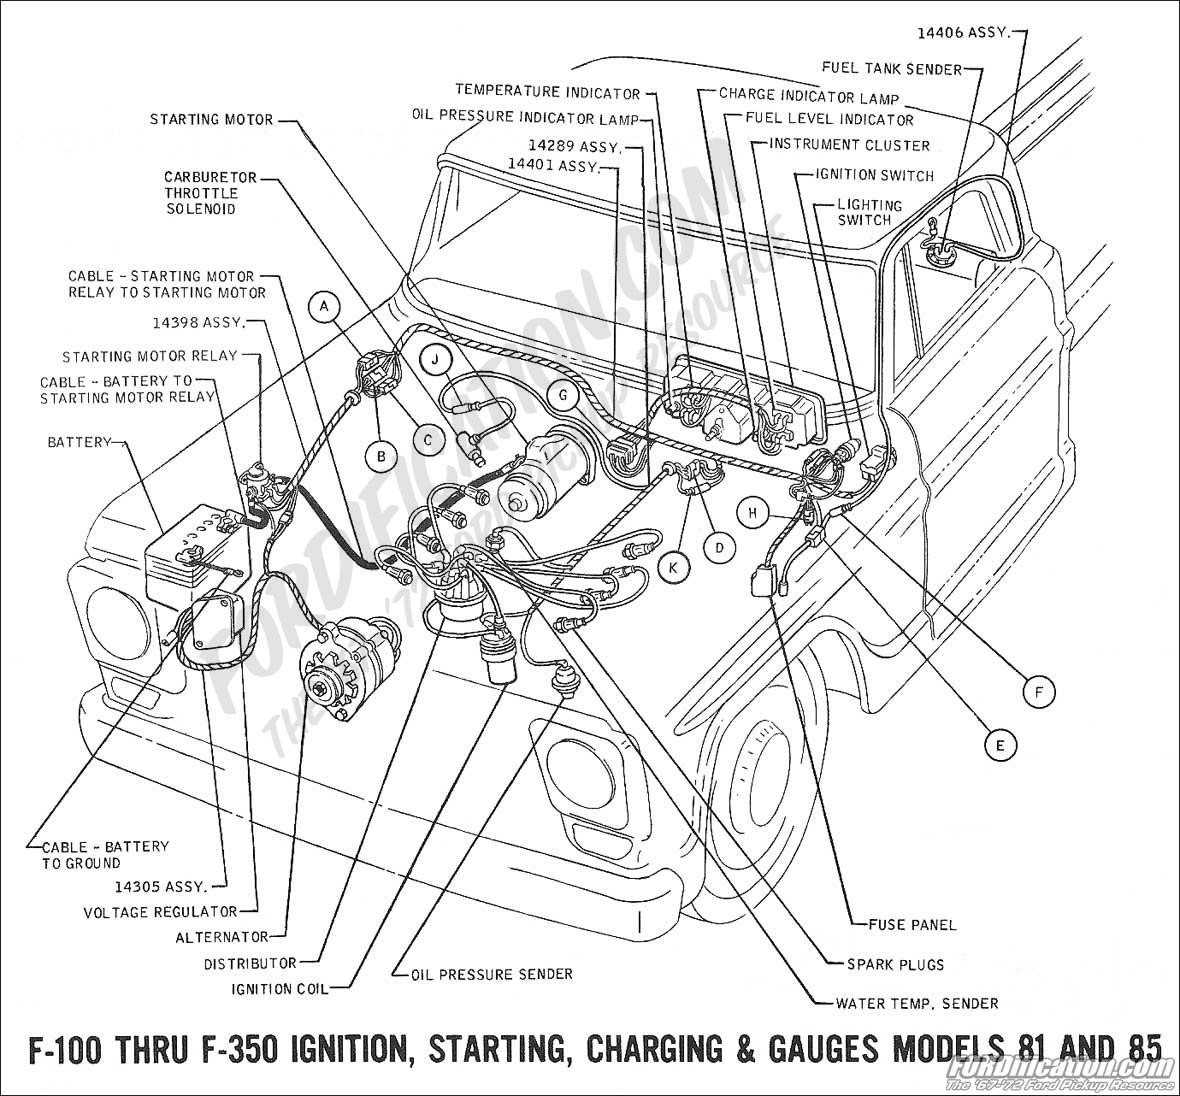 wiring 1969charging ford truck technical drawings and schematics section h wiring 1969 Ford F100 Steering Column Wiring Diagram at gsmportal.co